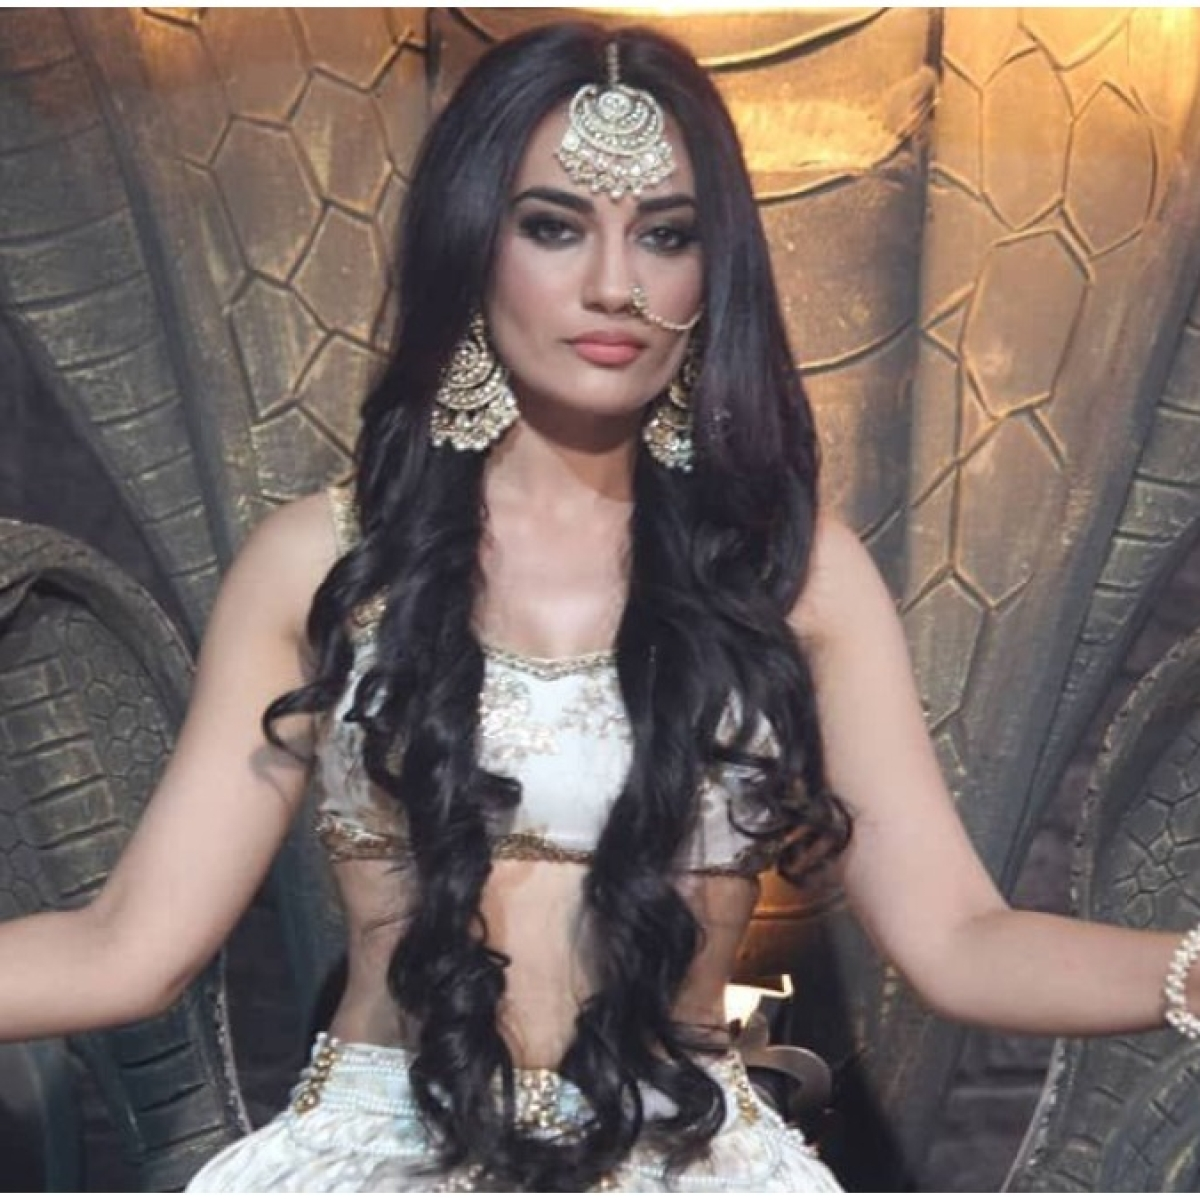 Same to same: Surbhi Jyoti compares 'biggest brand' 'Naagin' to 'Wonder Woman'!